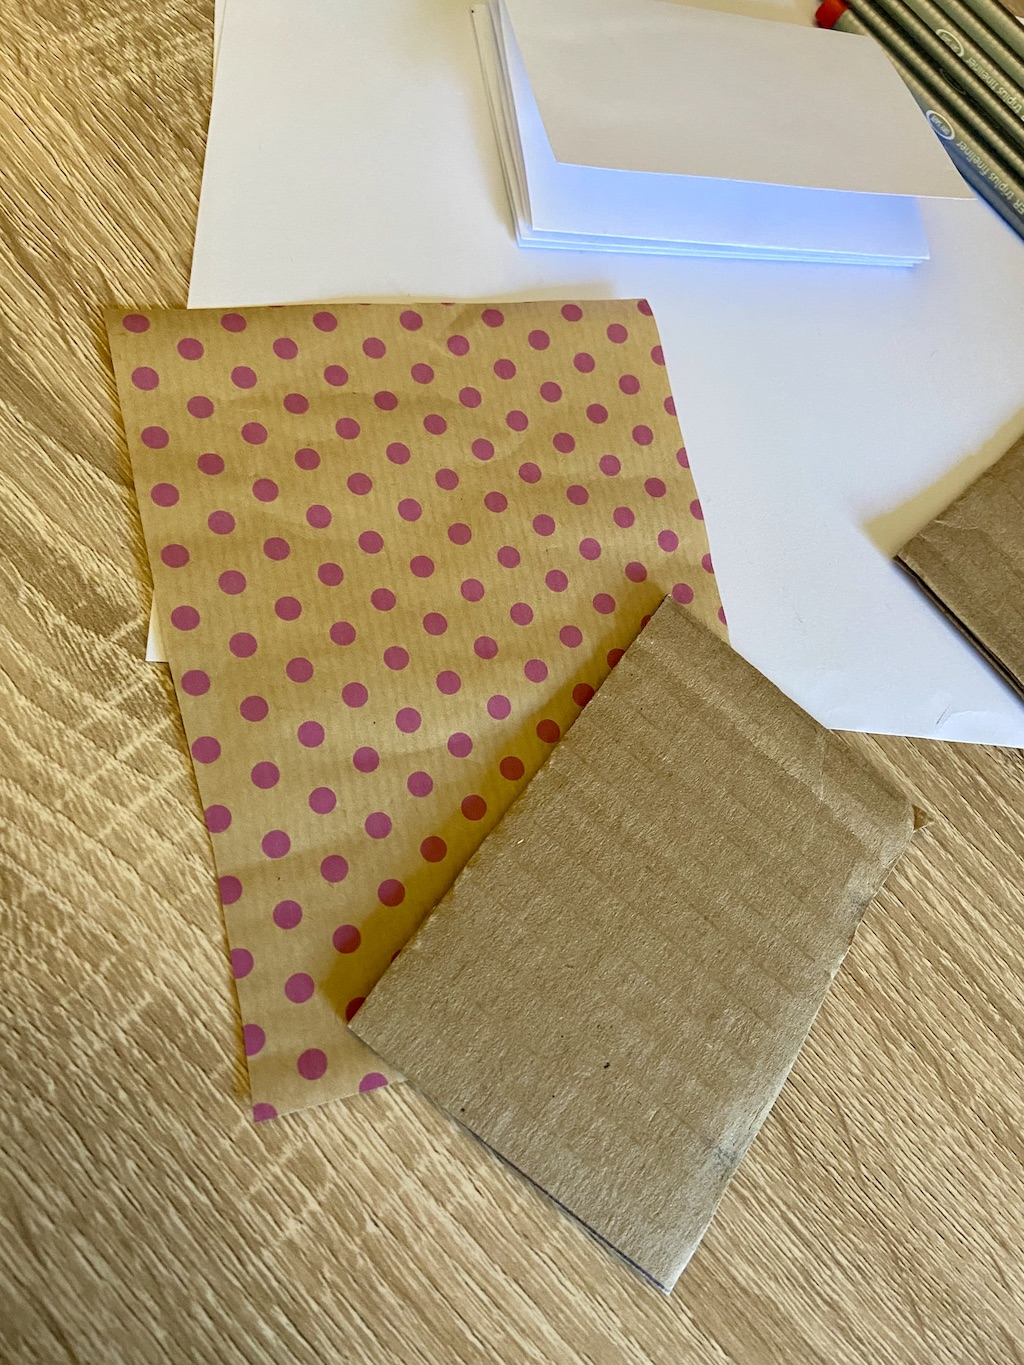 Take your decorative or scrap wrapping paper and cut two pieces a little larger than the cardboard, about an inch or two bigger on each side.